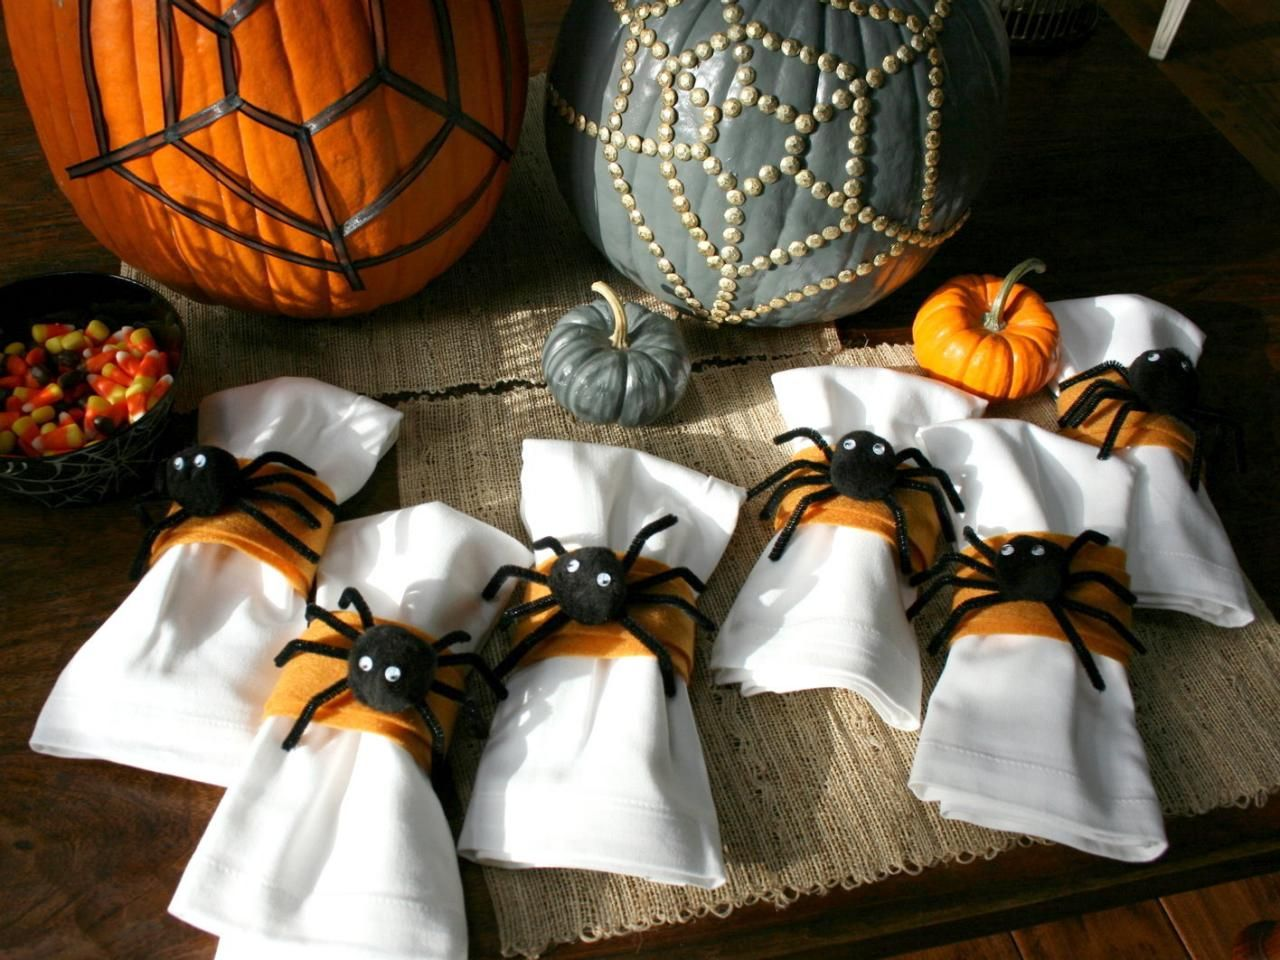 65+ DIY Halloween Decorations  Decorating Ideas Hgtv, Halloween - diy outdoor halloween decorations